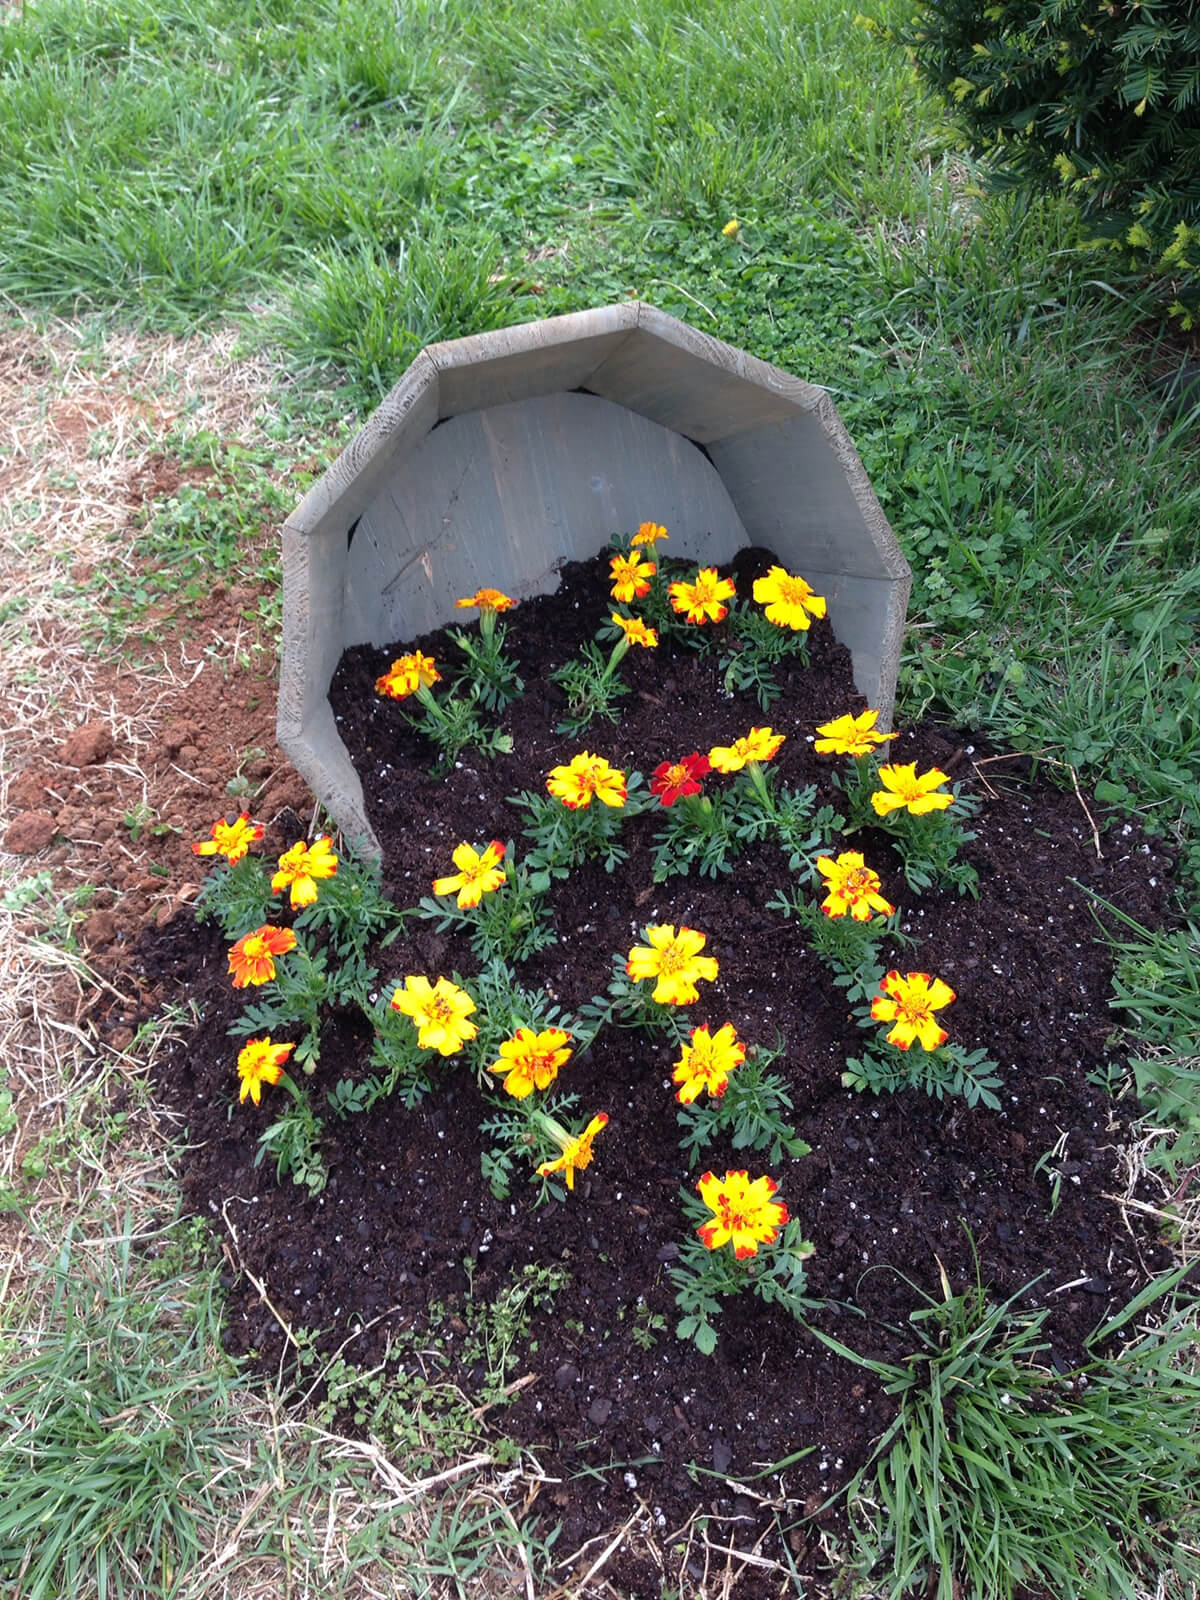 20 Marigolds Popping Out Of Their Planter